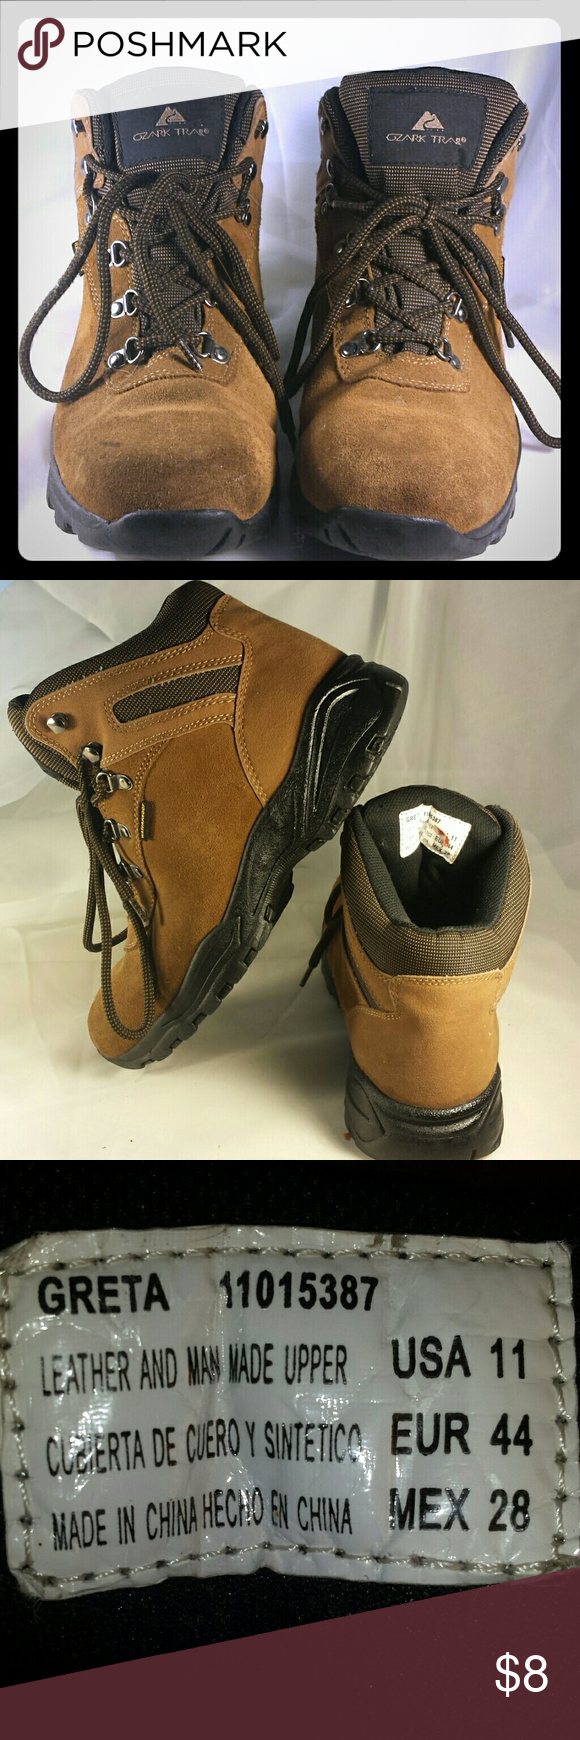 18d2ec5e0b3 Ozark Trail Sz 11 Greta Waterproof Hiking Boots This is a very nice ...